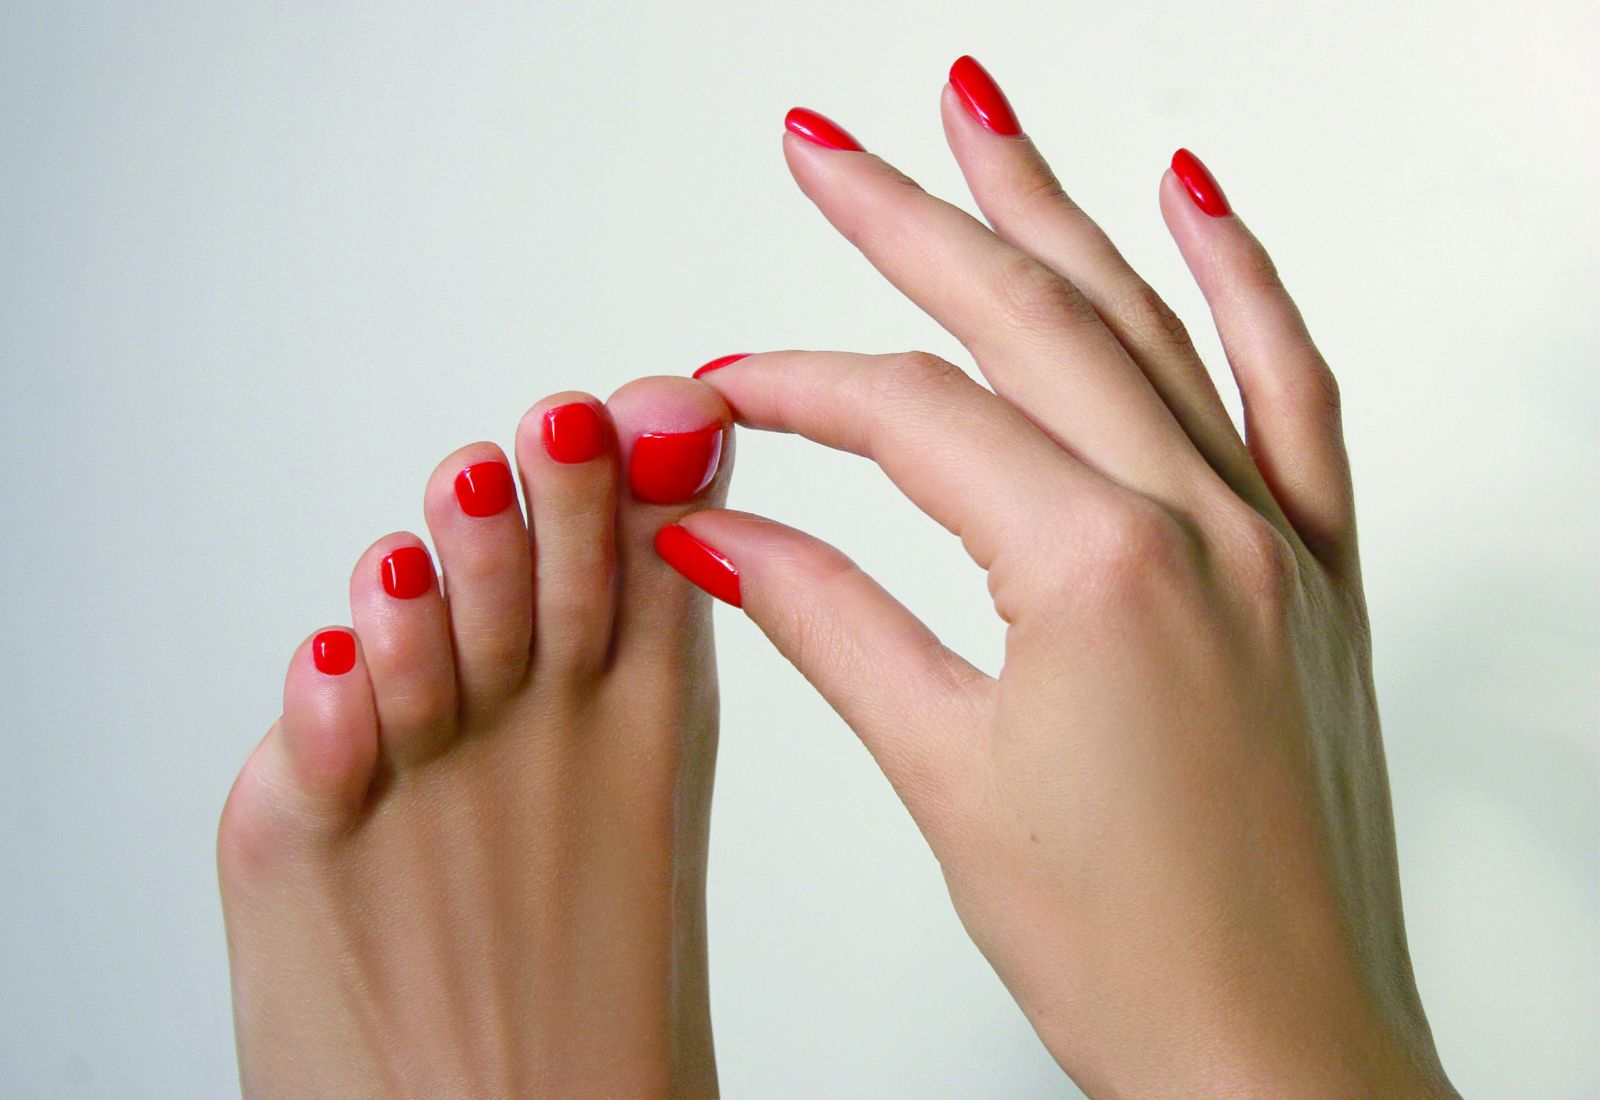 Toes and fingers 1.jpg